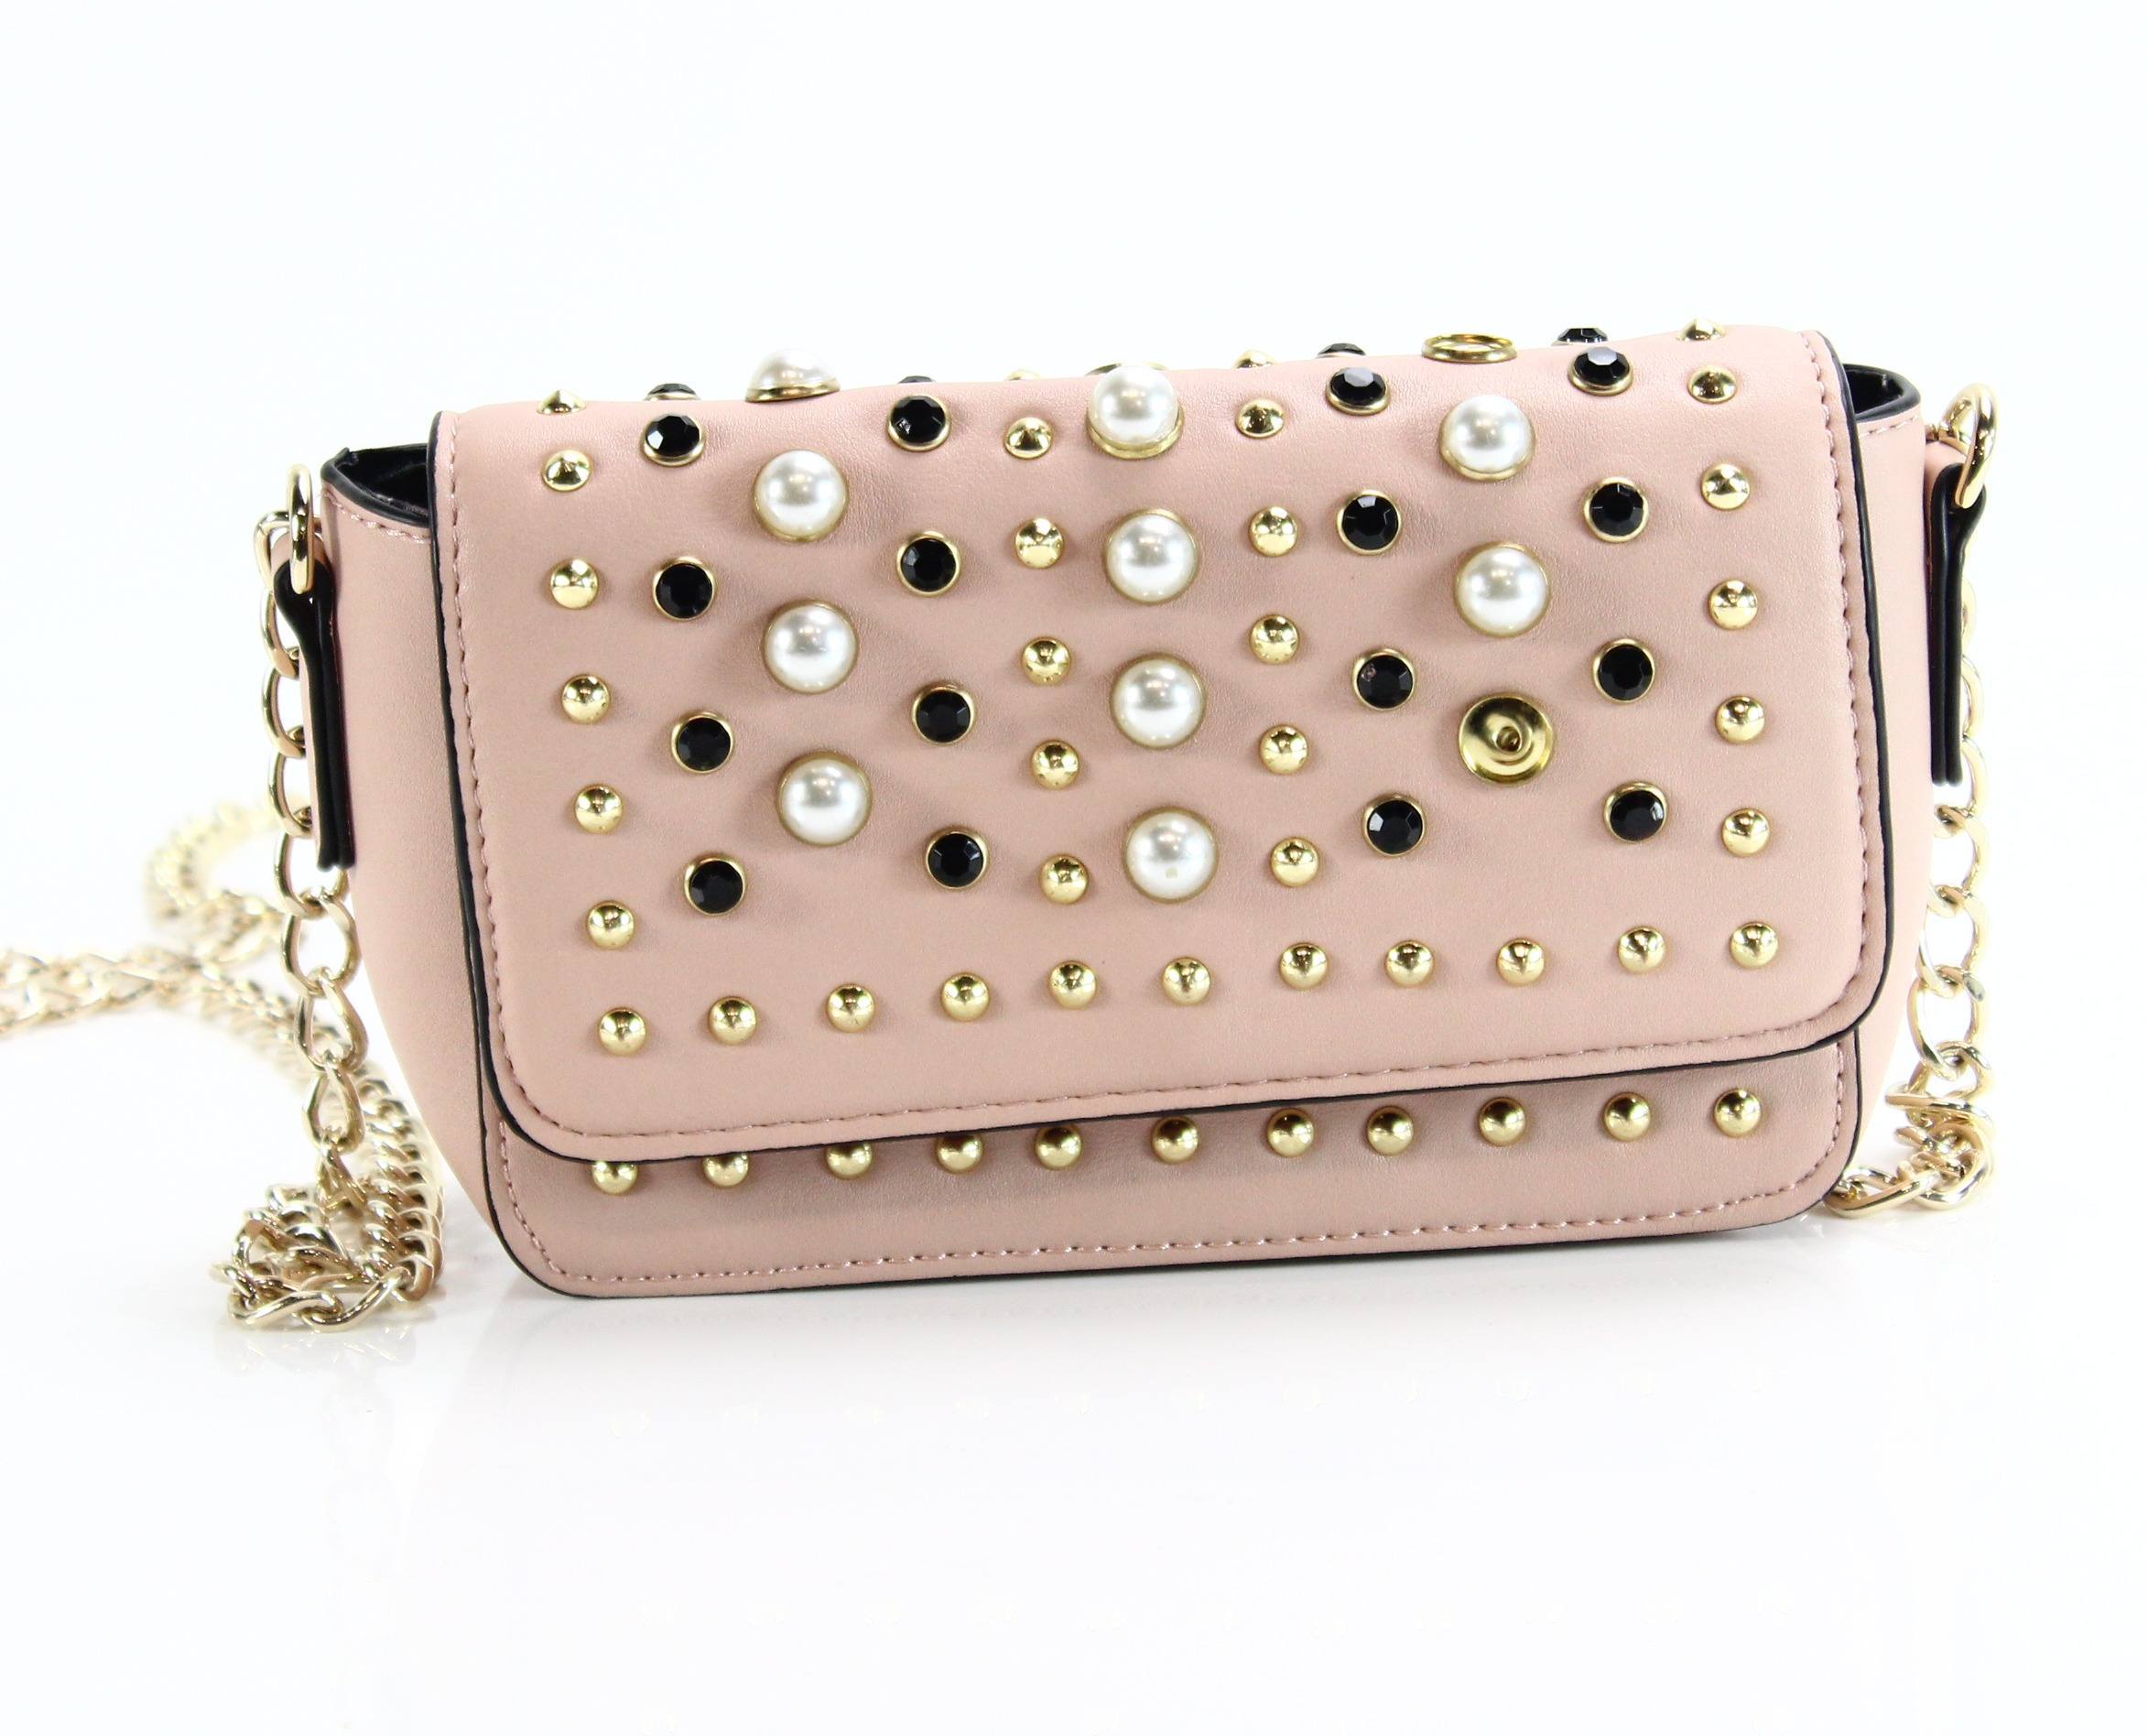 f4421e596b Details about Steve Madden NEW Pink Gold Aiden Embellished Mini Flap Crossbody  Bag $78- #045